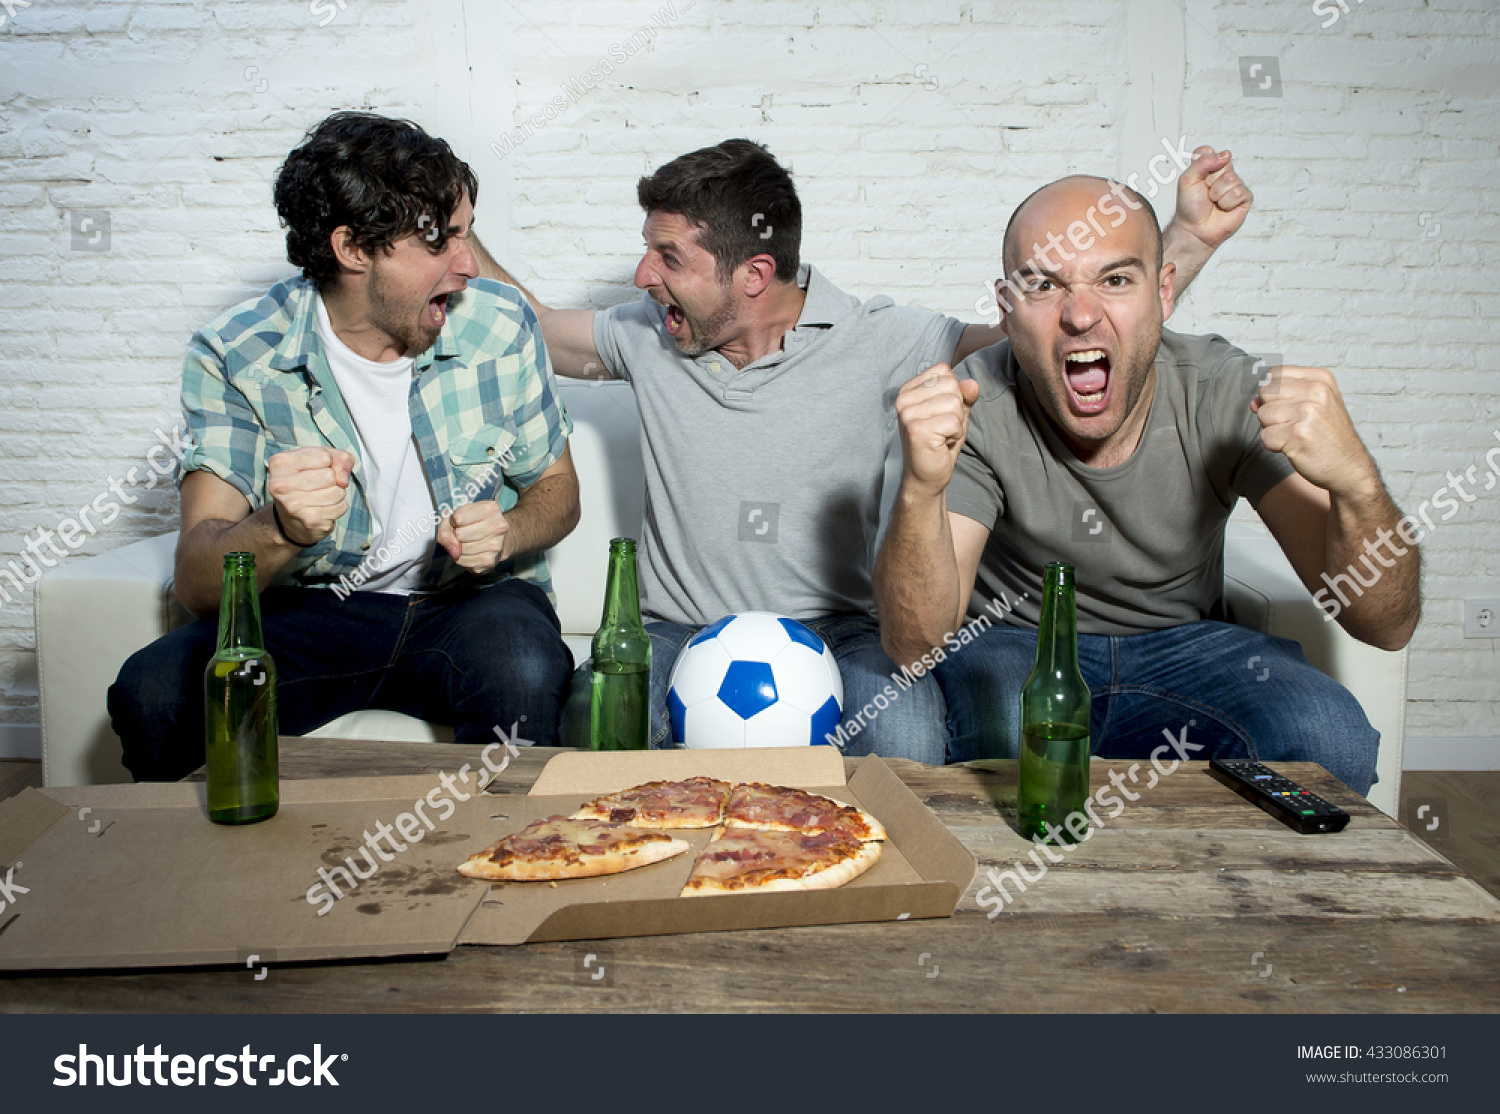 Fans taking pictures with cell phone behind barrier stock photo - Group Of Friends Fanatic Football Fans Watching Soccer Game On Television Celebrating Goal On Couch Screaming